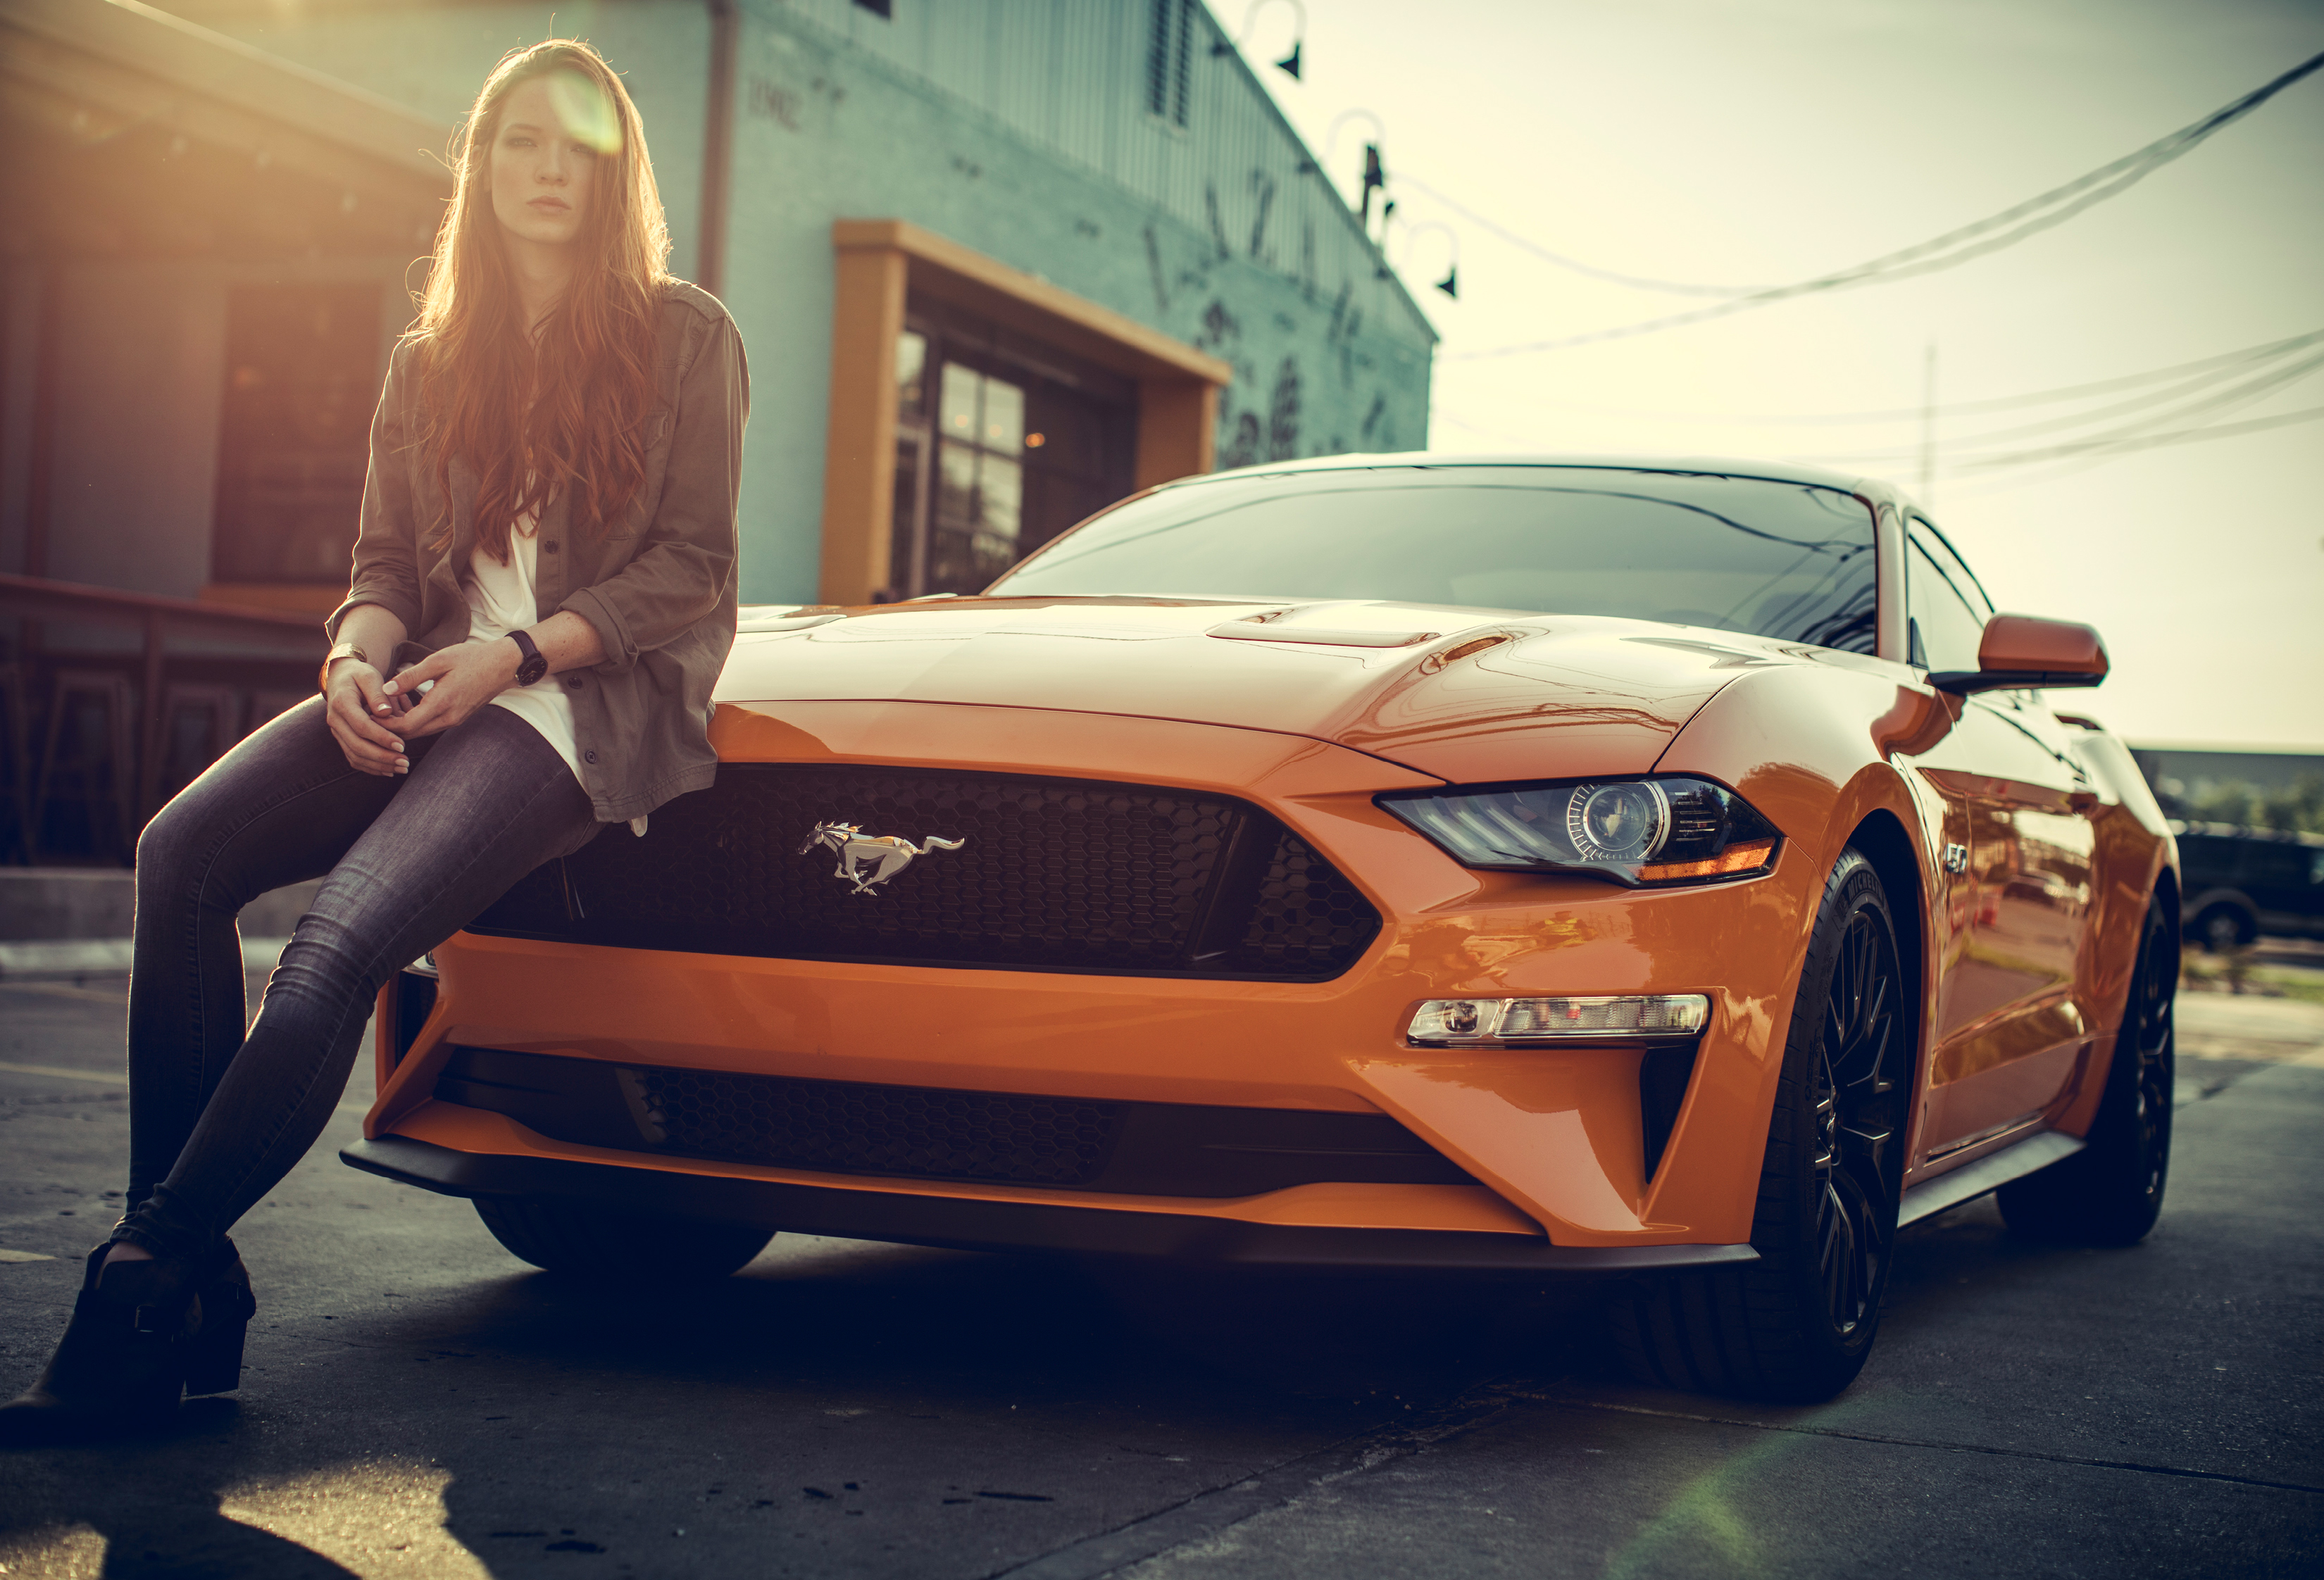 Girls Cars Hd Wallpaper Background Image 3300x2244 Id 911772 Wallpaper Abyss